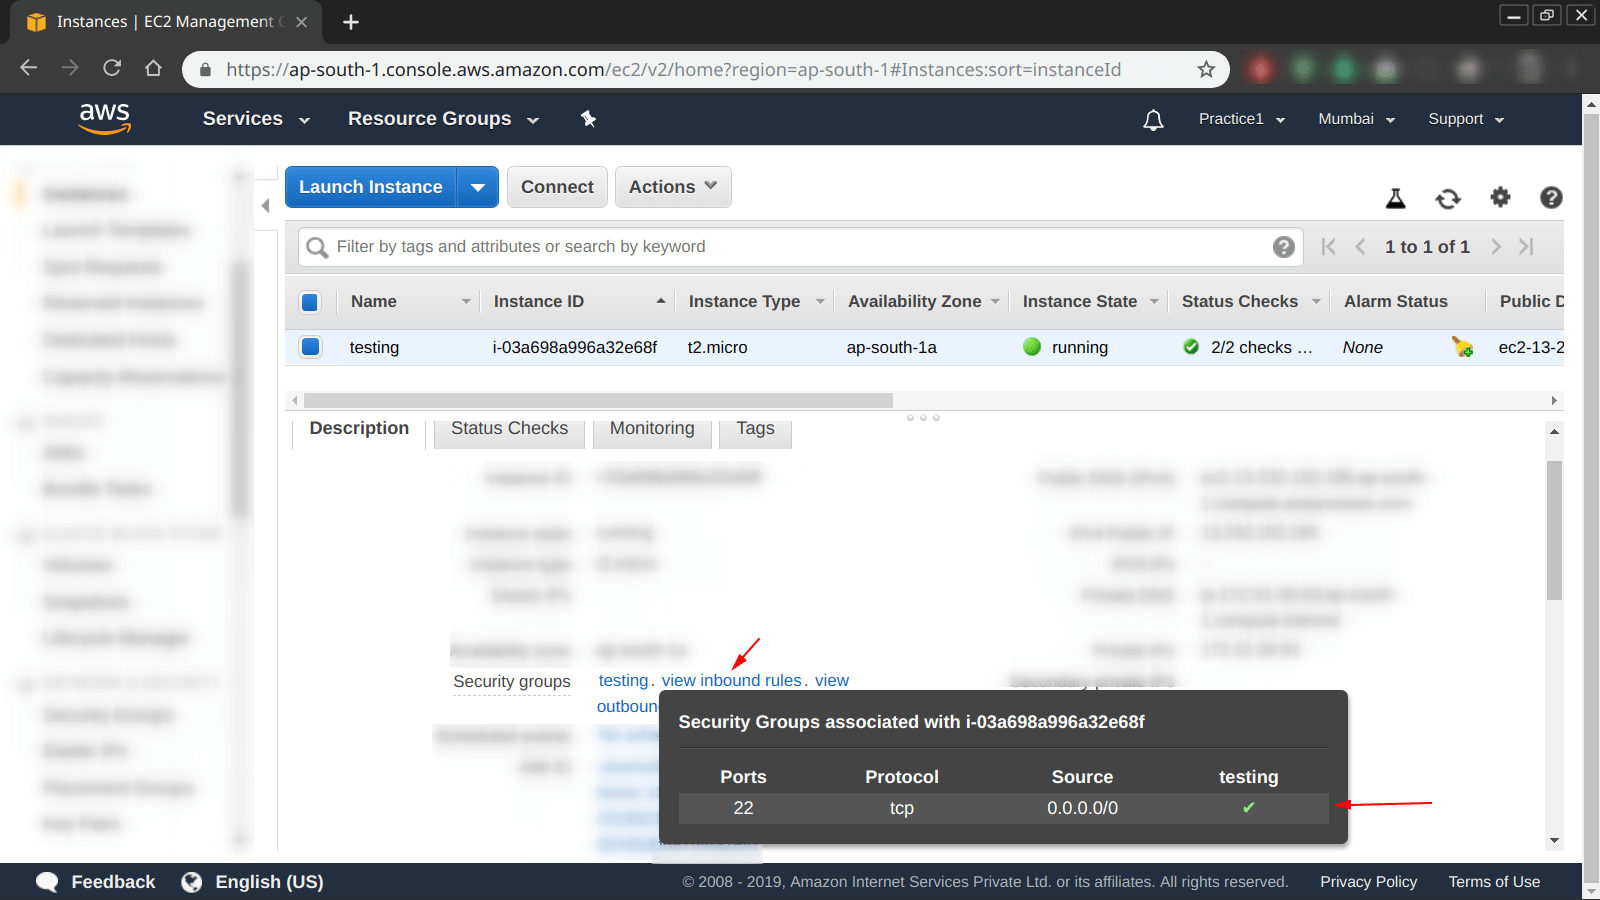 view inbound rules of an instance from ec2 dashboard